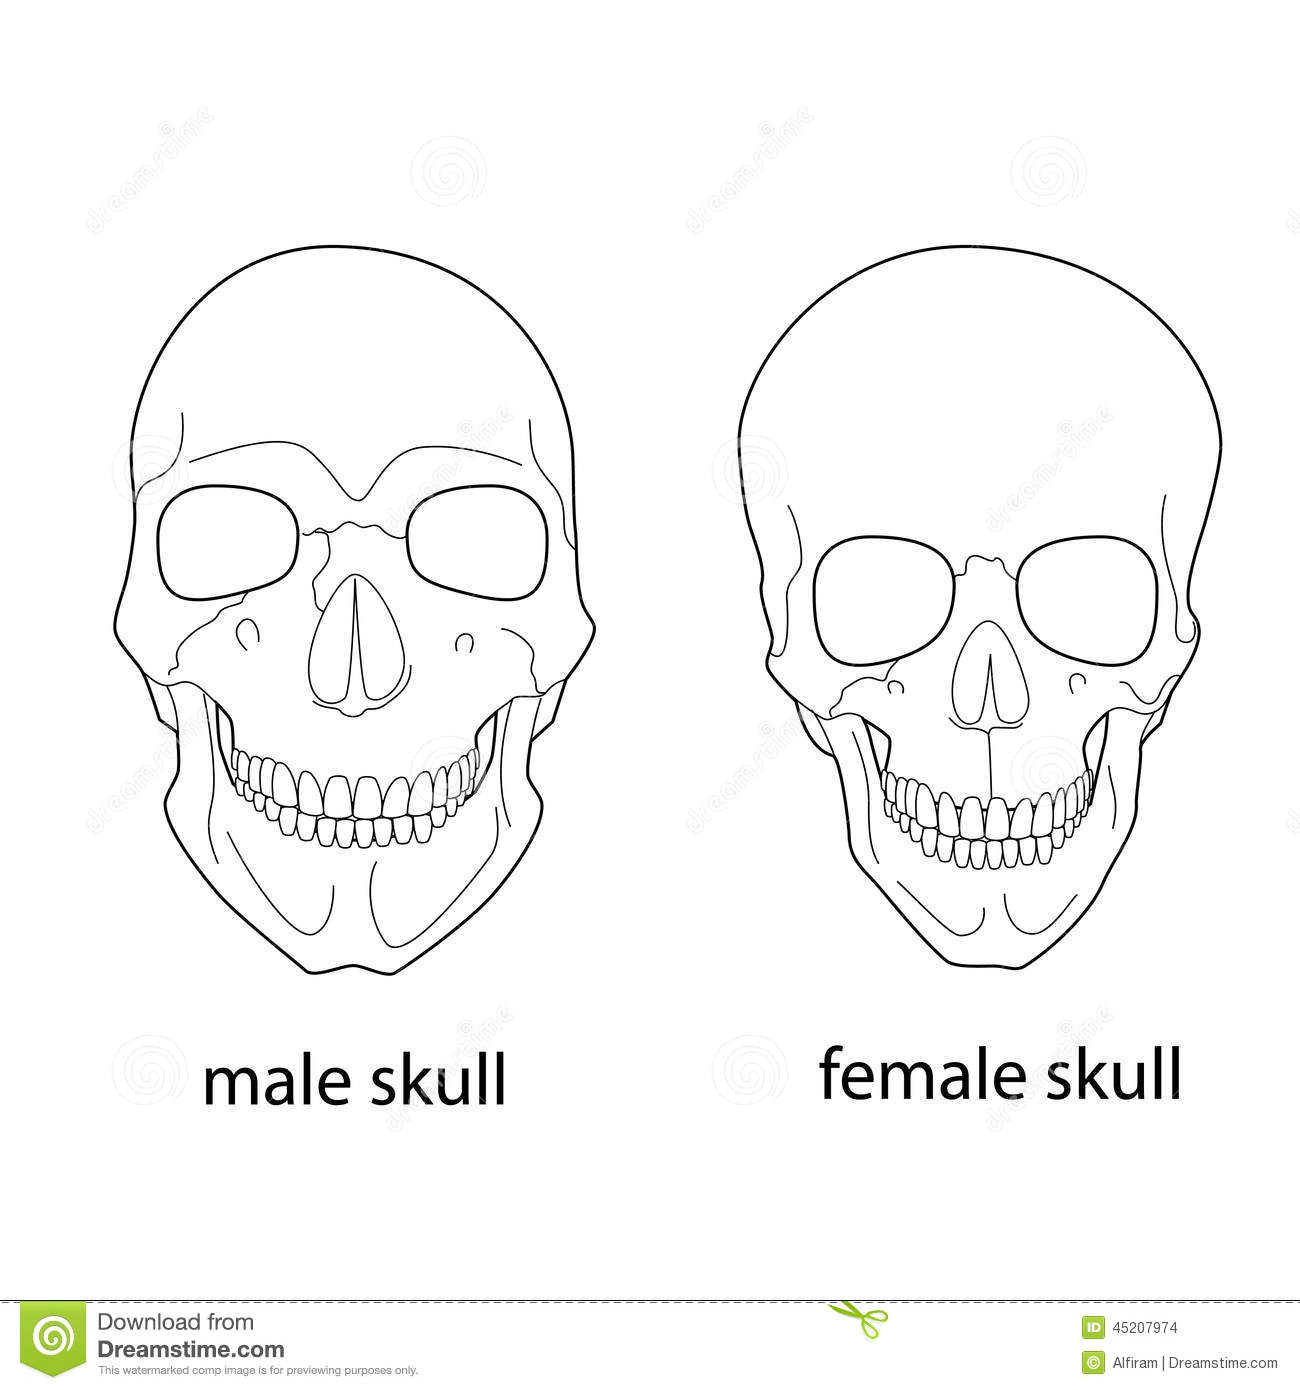 Differences Of Male And Female Skull Stock Vector